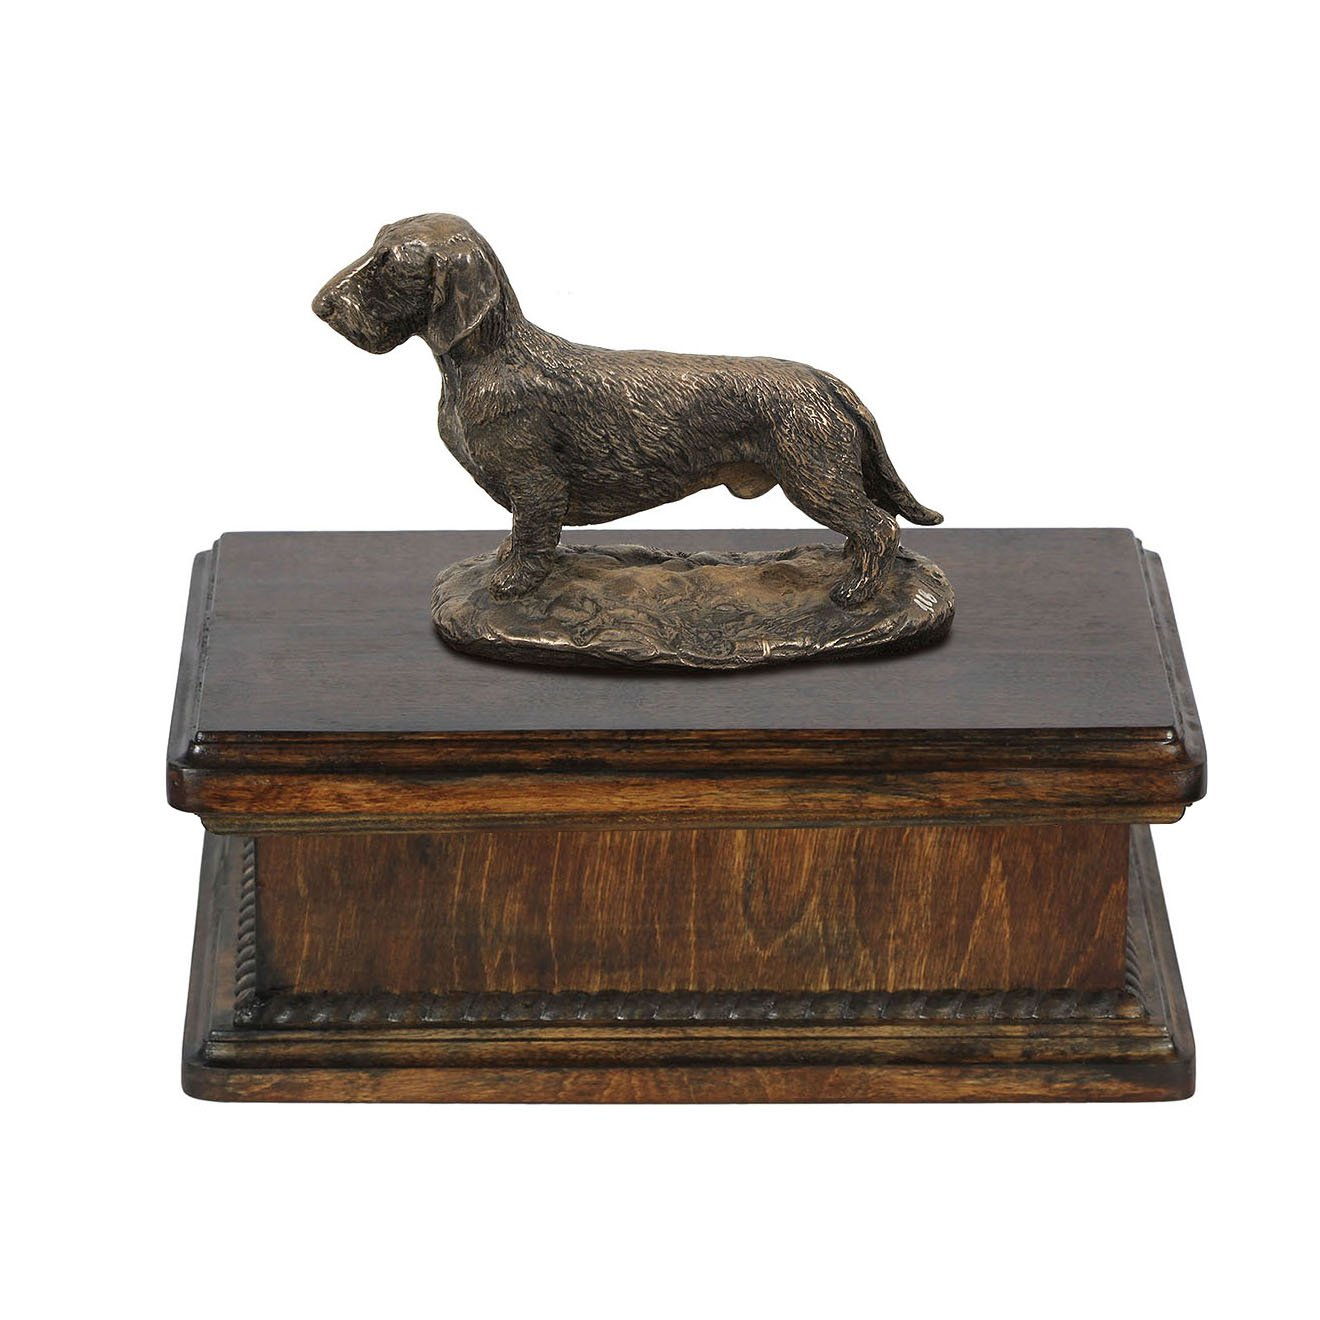 Dachshund, memorial, urn for dog's ashes, with dog statue, exclusive, ArtDog